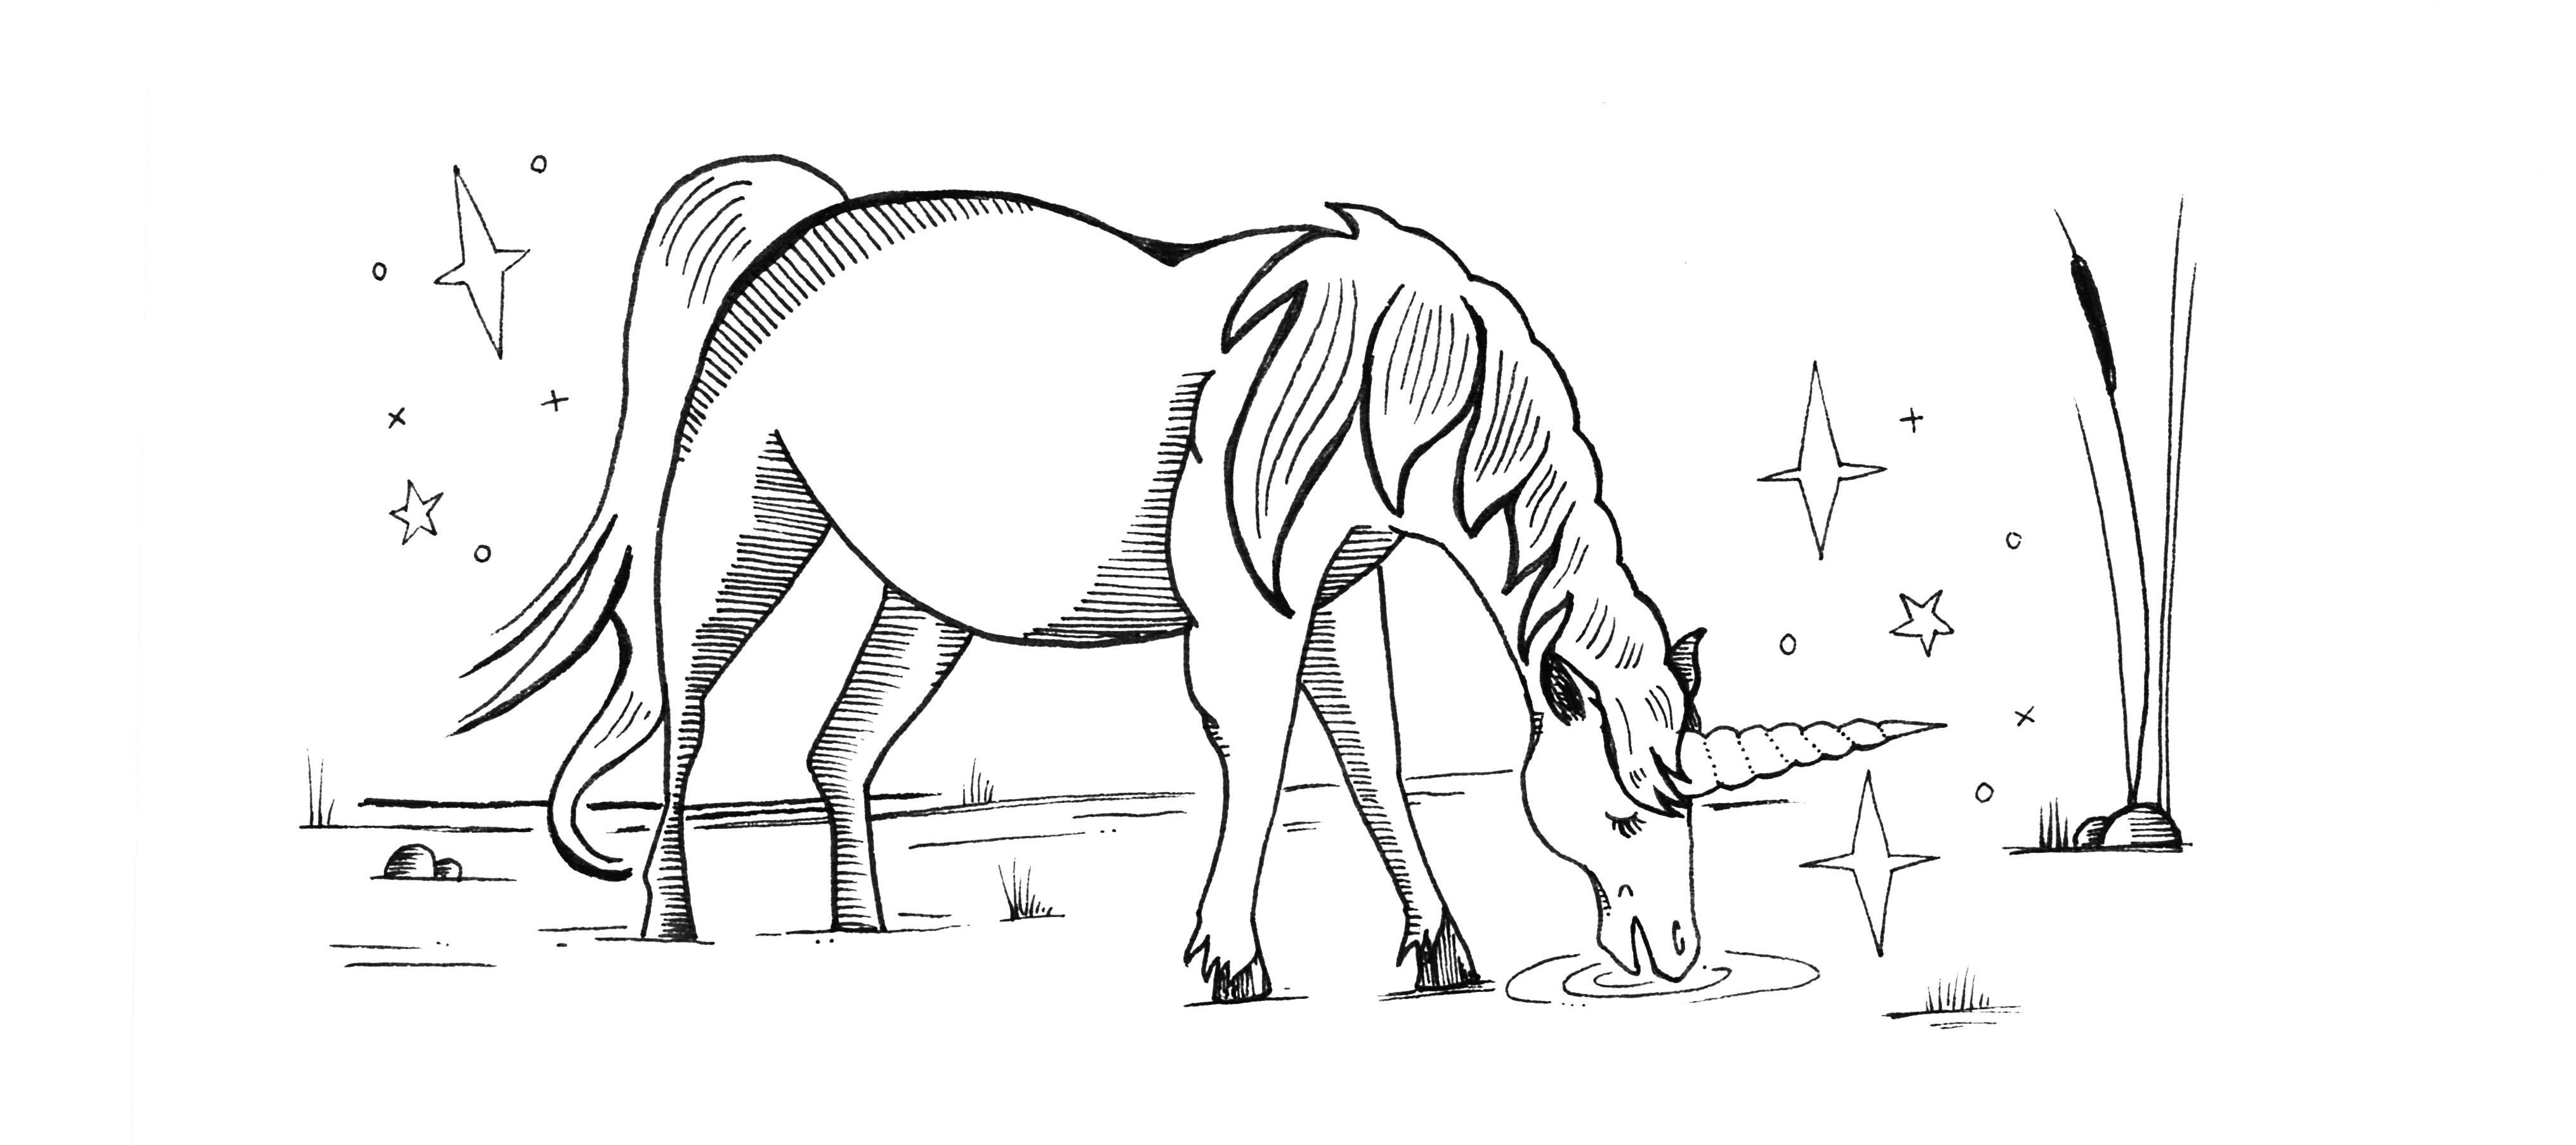 Heroic fundraising blog featured image unicorn Drawing by Senior Designer Amanda Swadlo. All rights reserved.